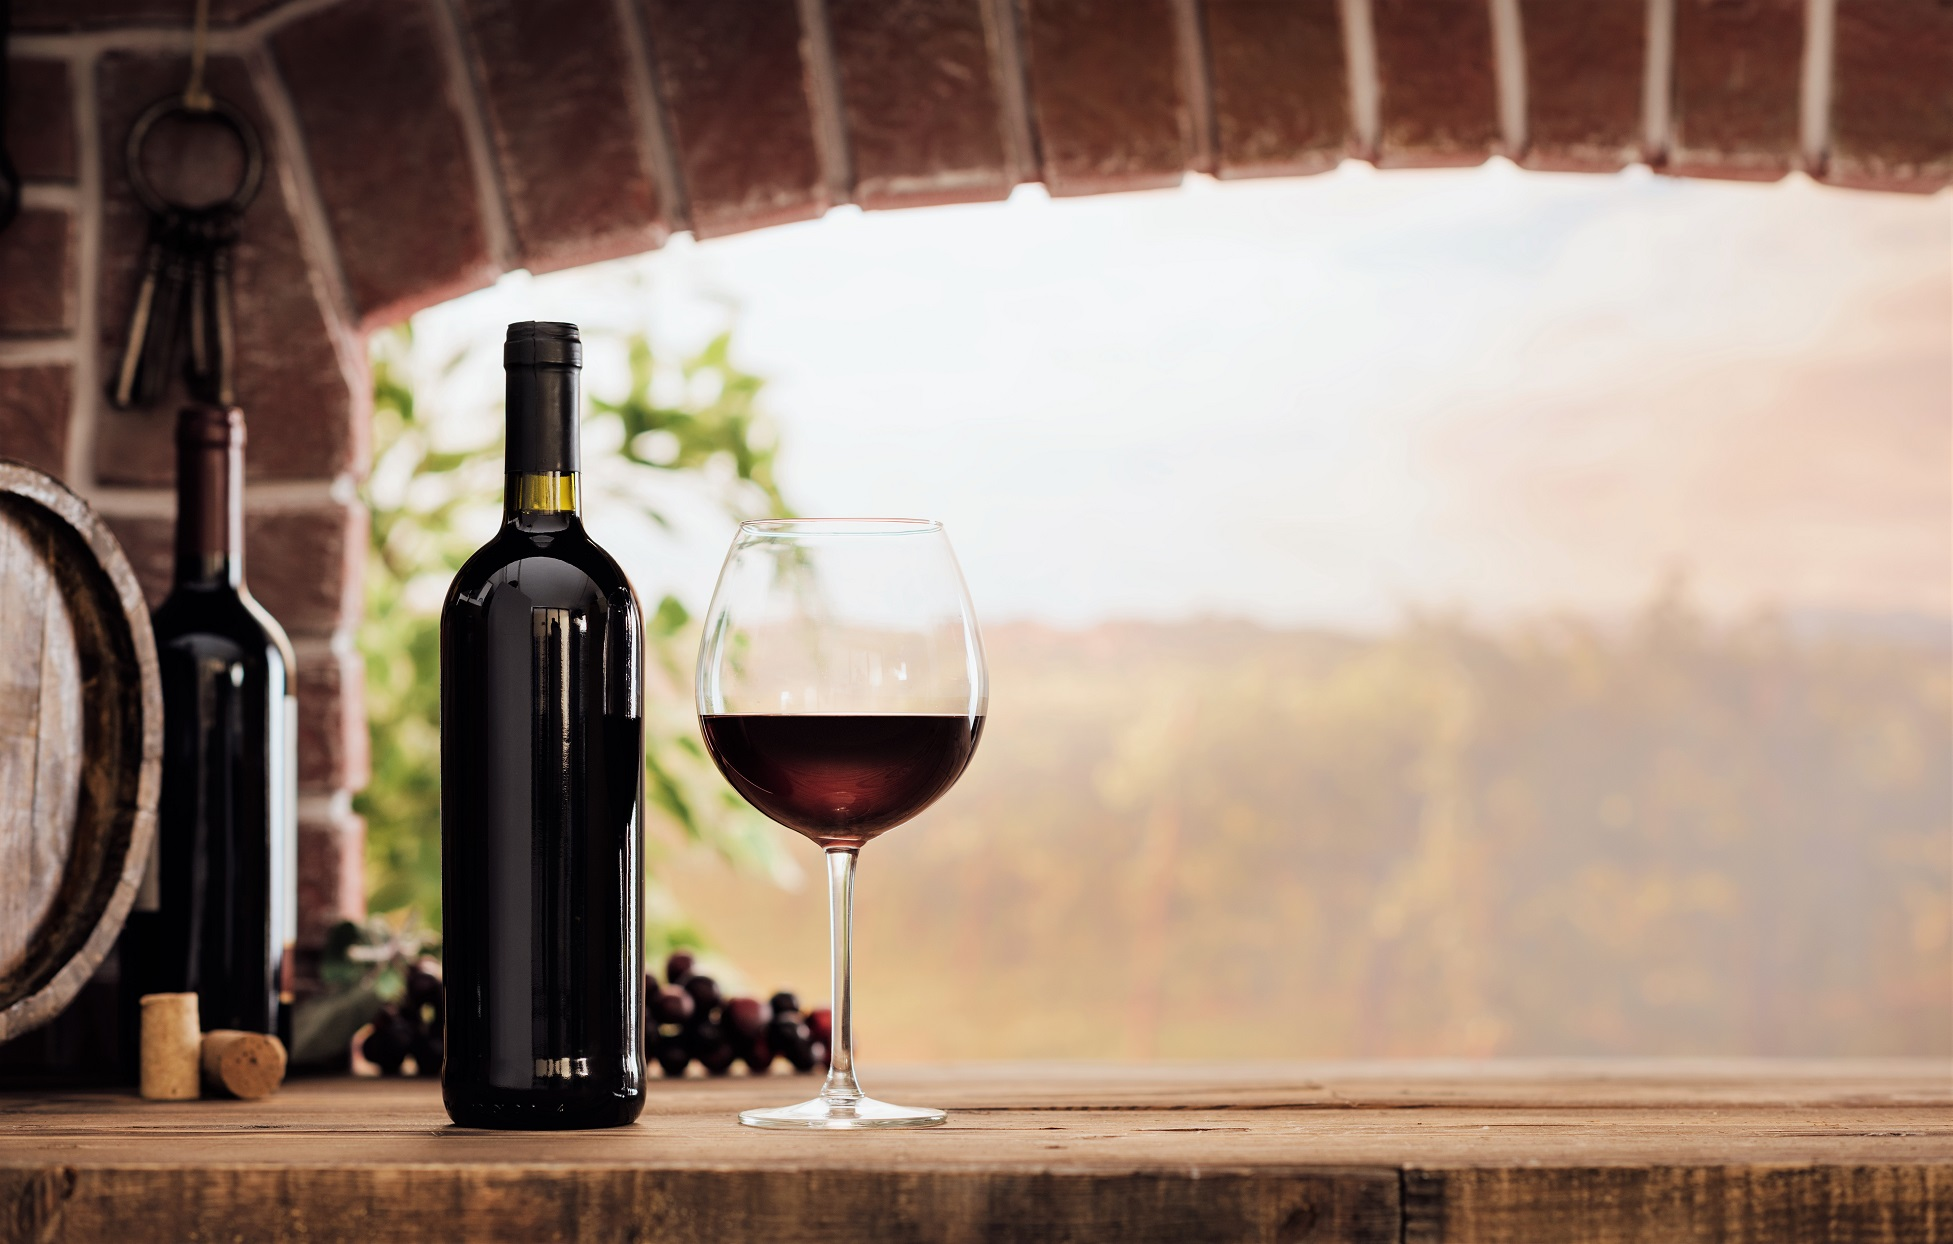 Bottle of Wine and Glass of Red Wine on Bricks